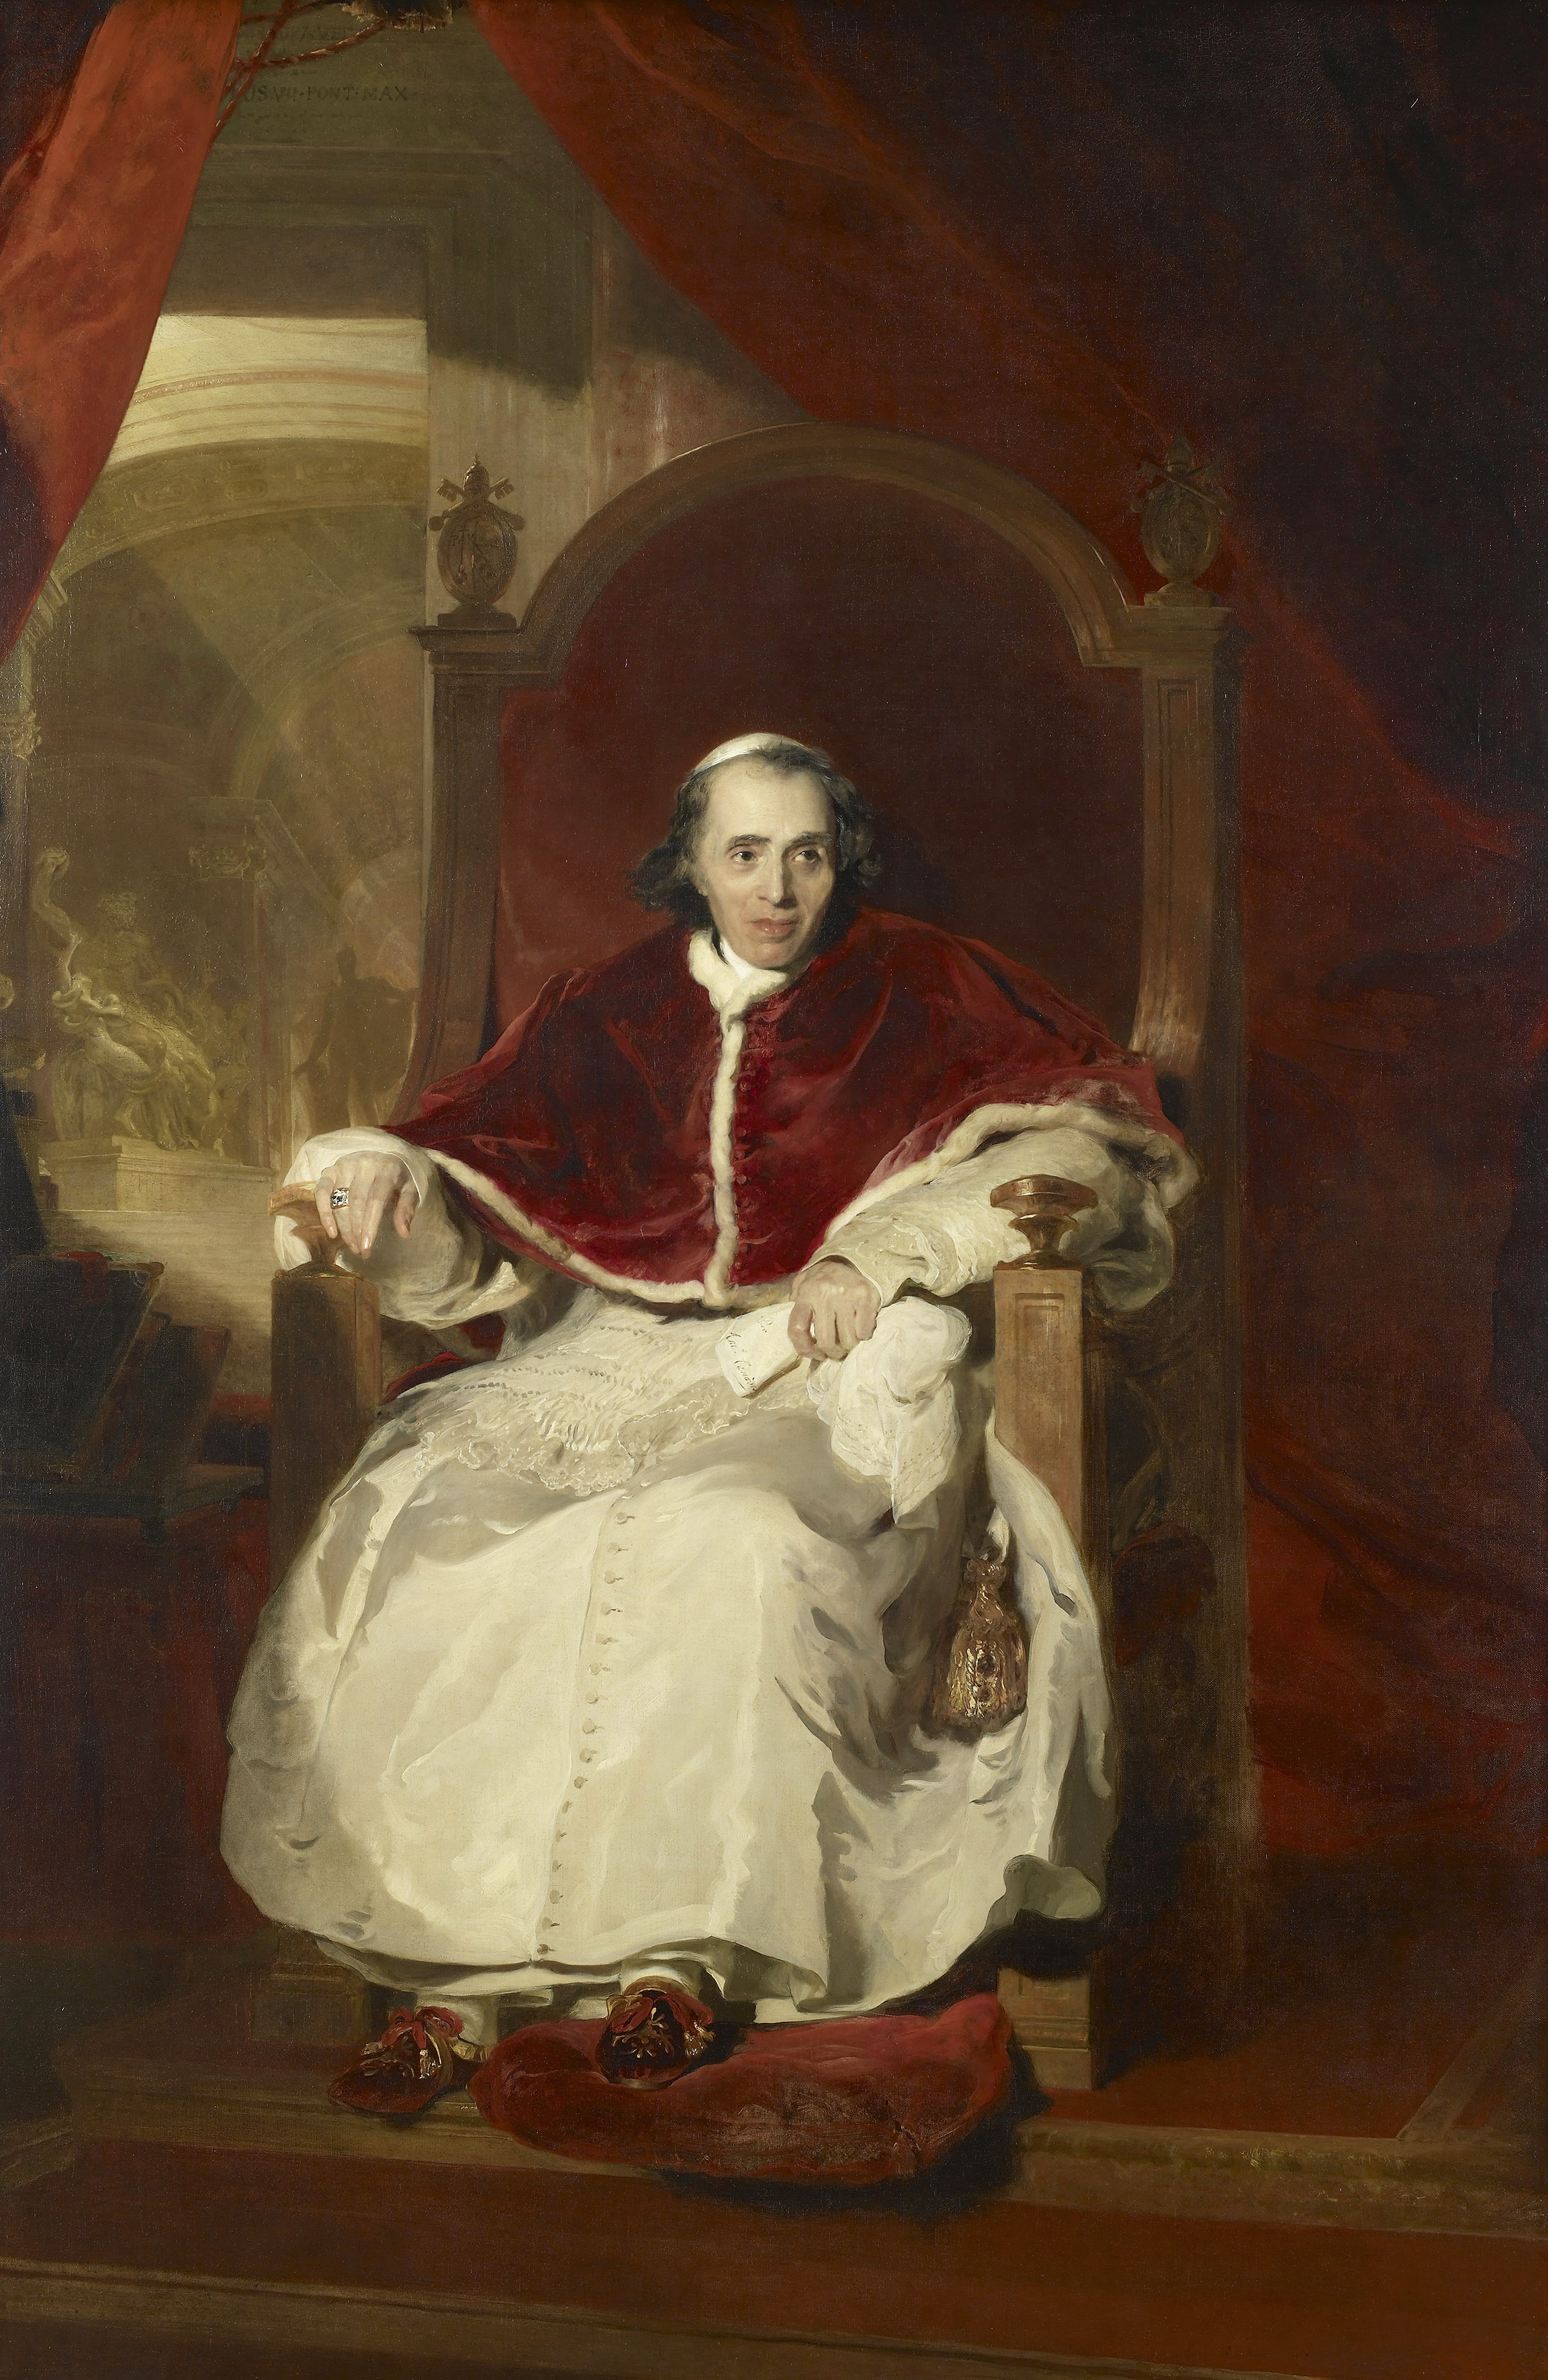 Sir Thomas Lawrence, Pope Pius VII (1742-1823), 1819. From the Waterloo Chamber, Windsor Castle.